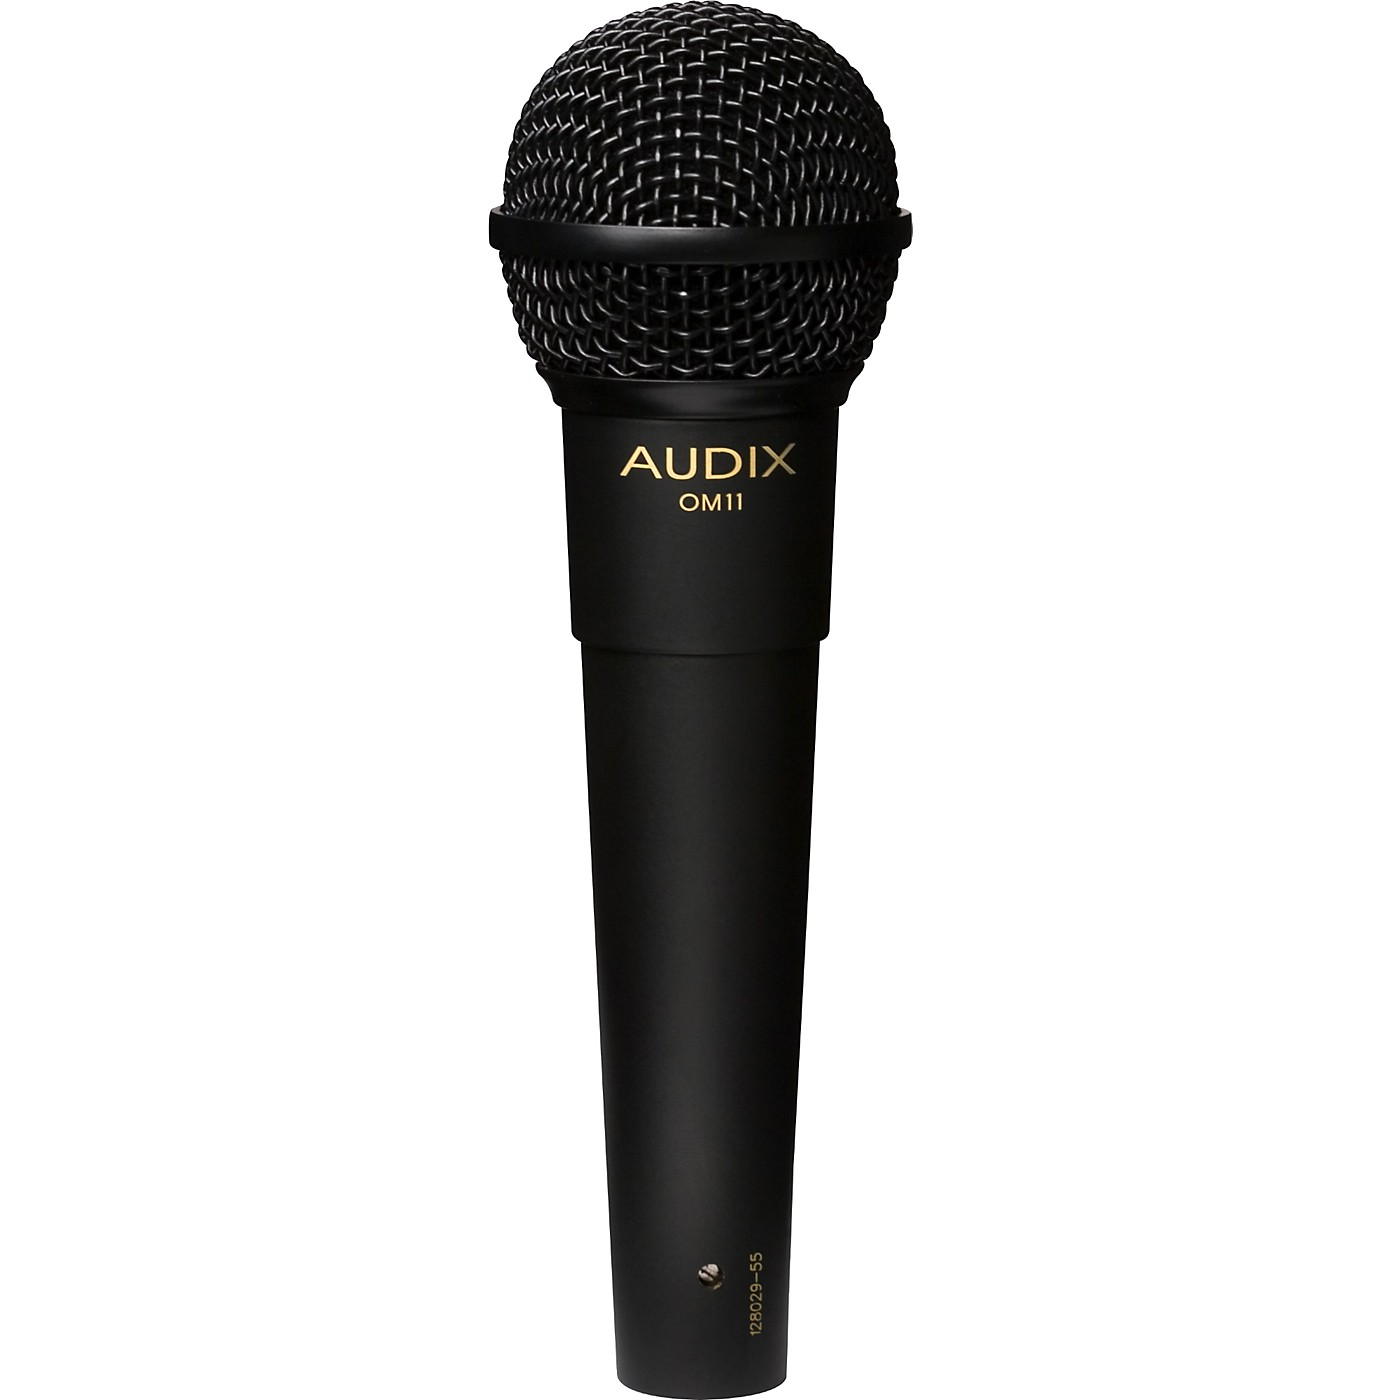 Audix OM11 Premium Dynamic Vocal Microphone thumbnail